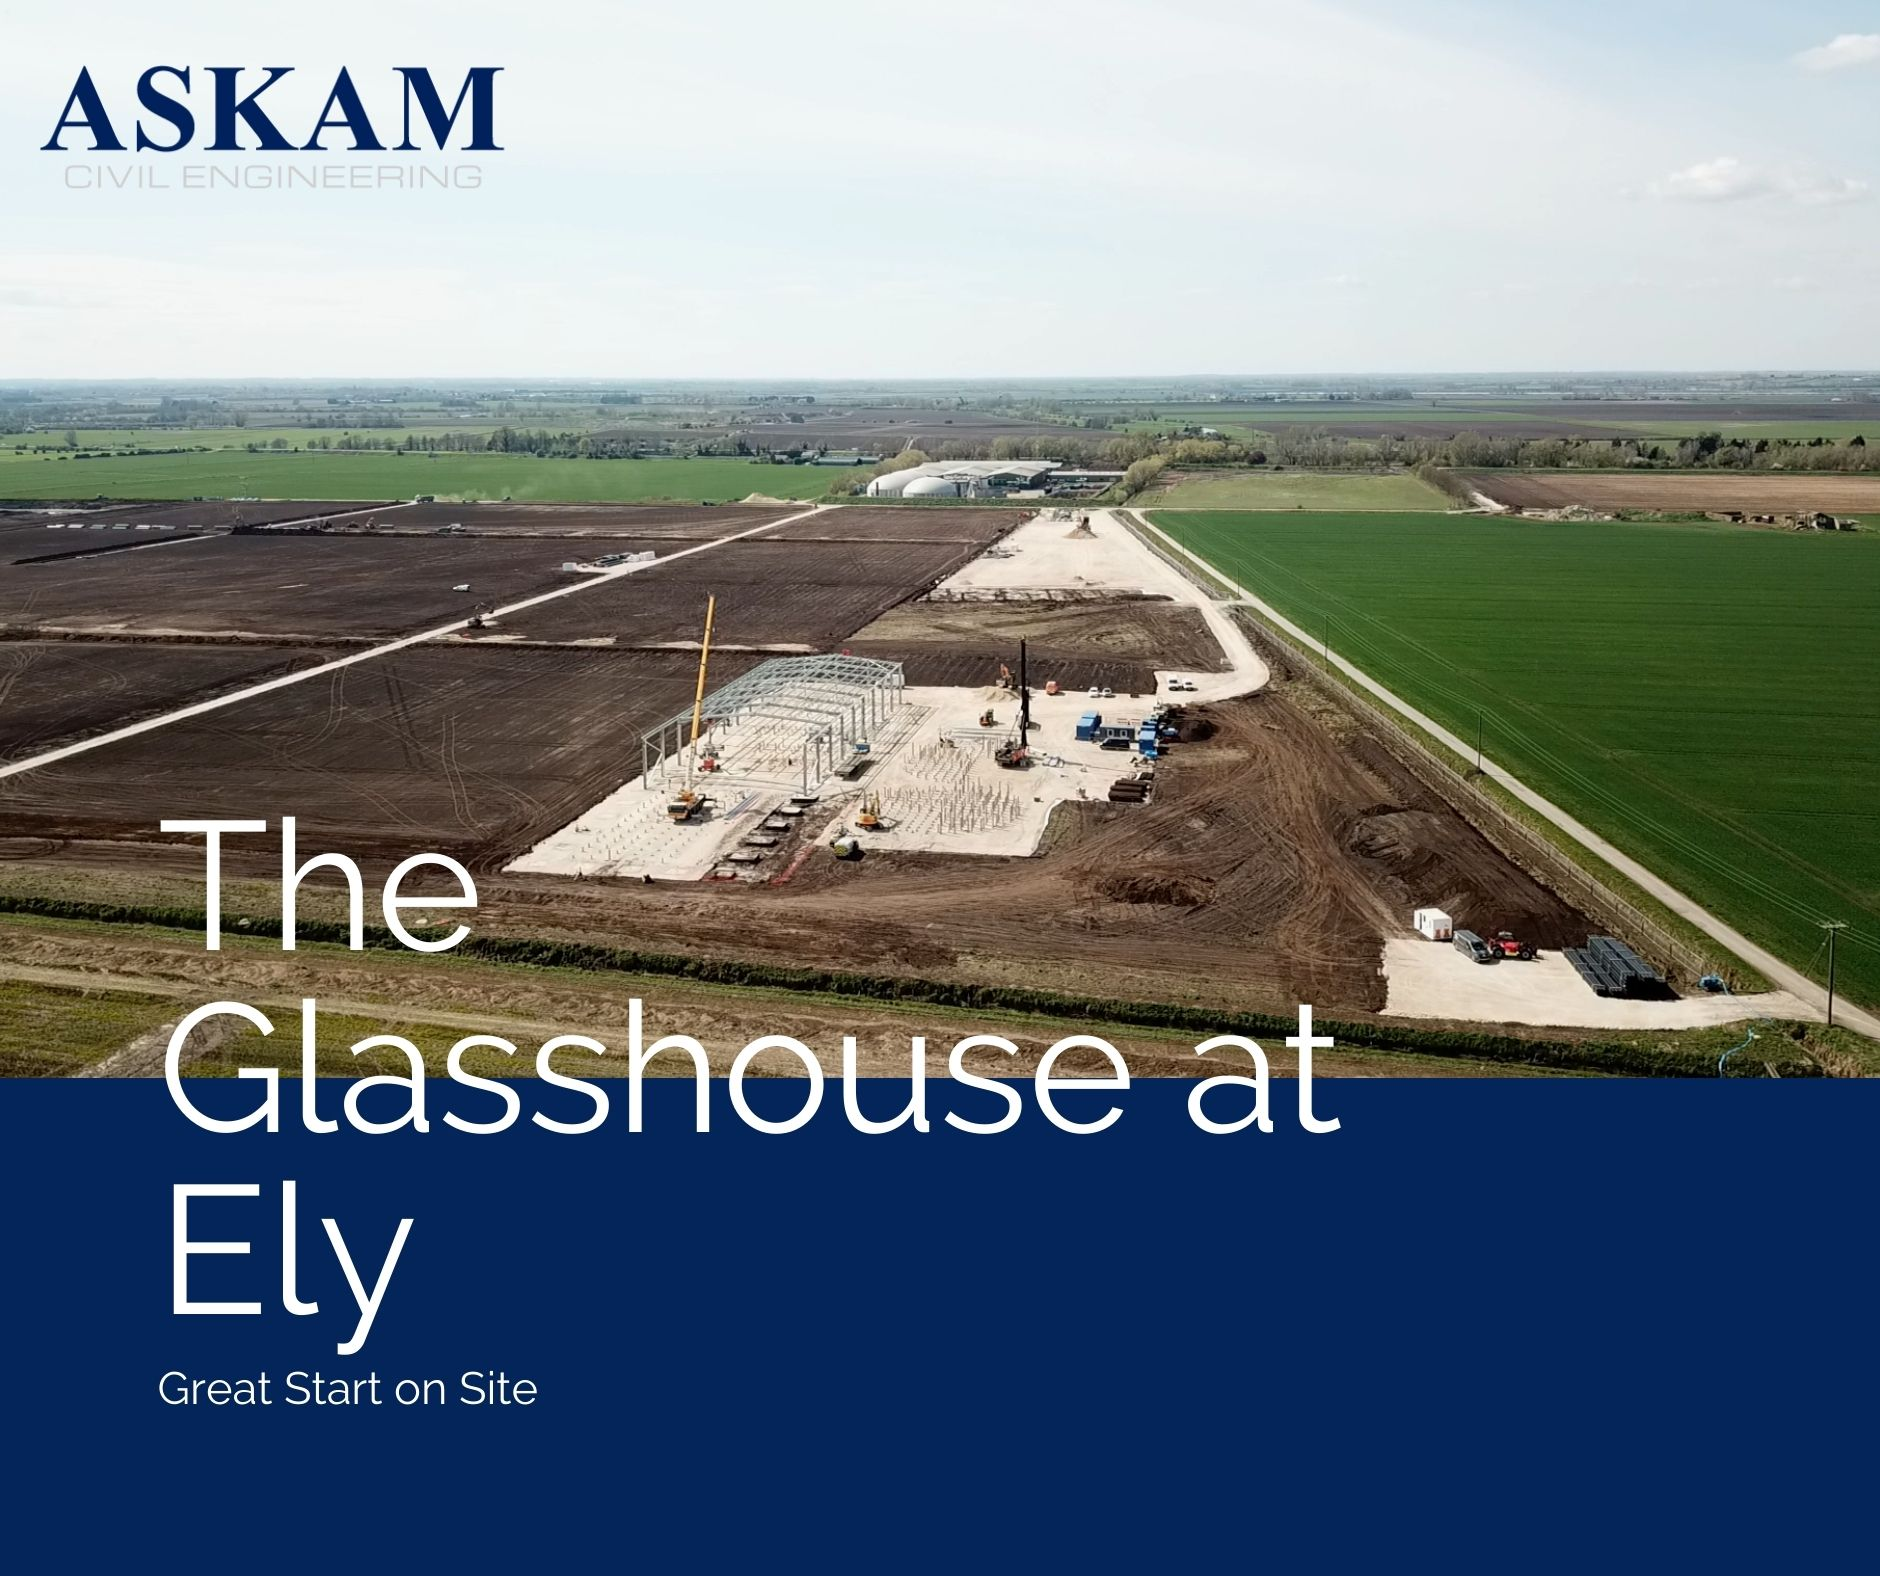 The Glasshouse at Ely